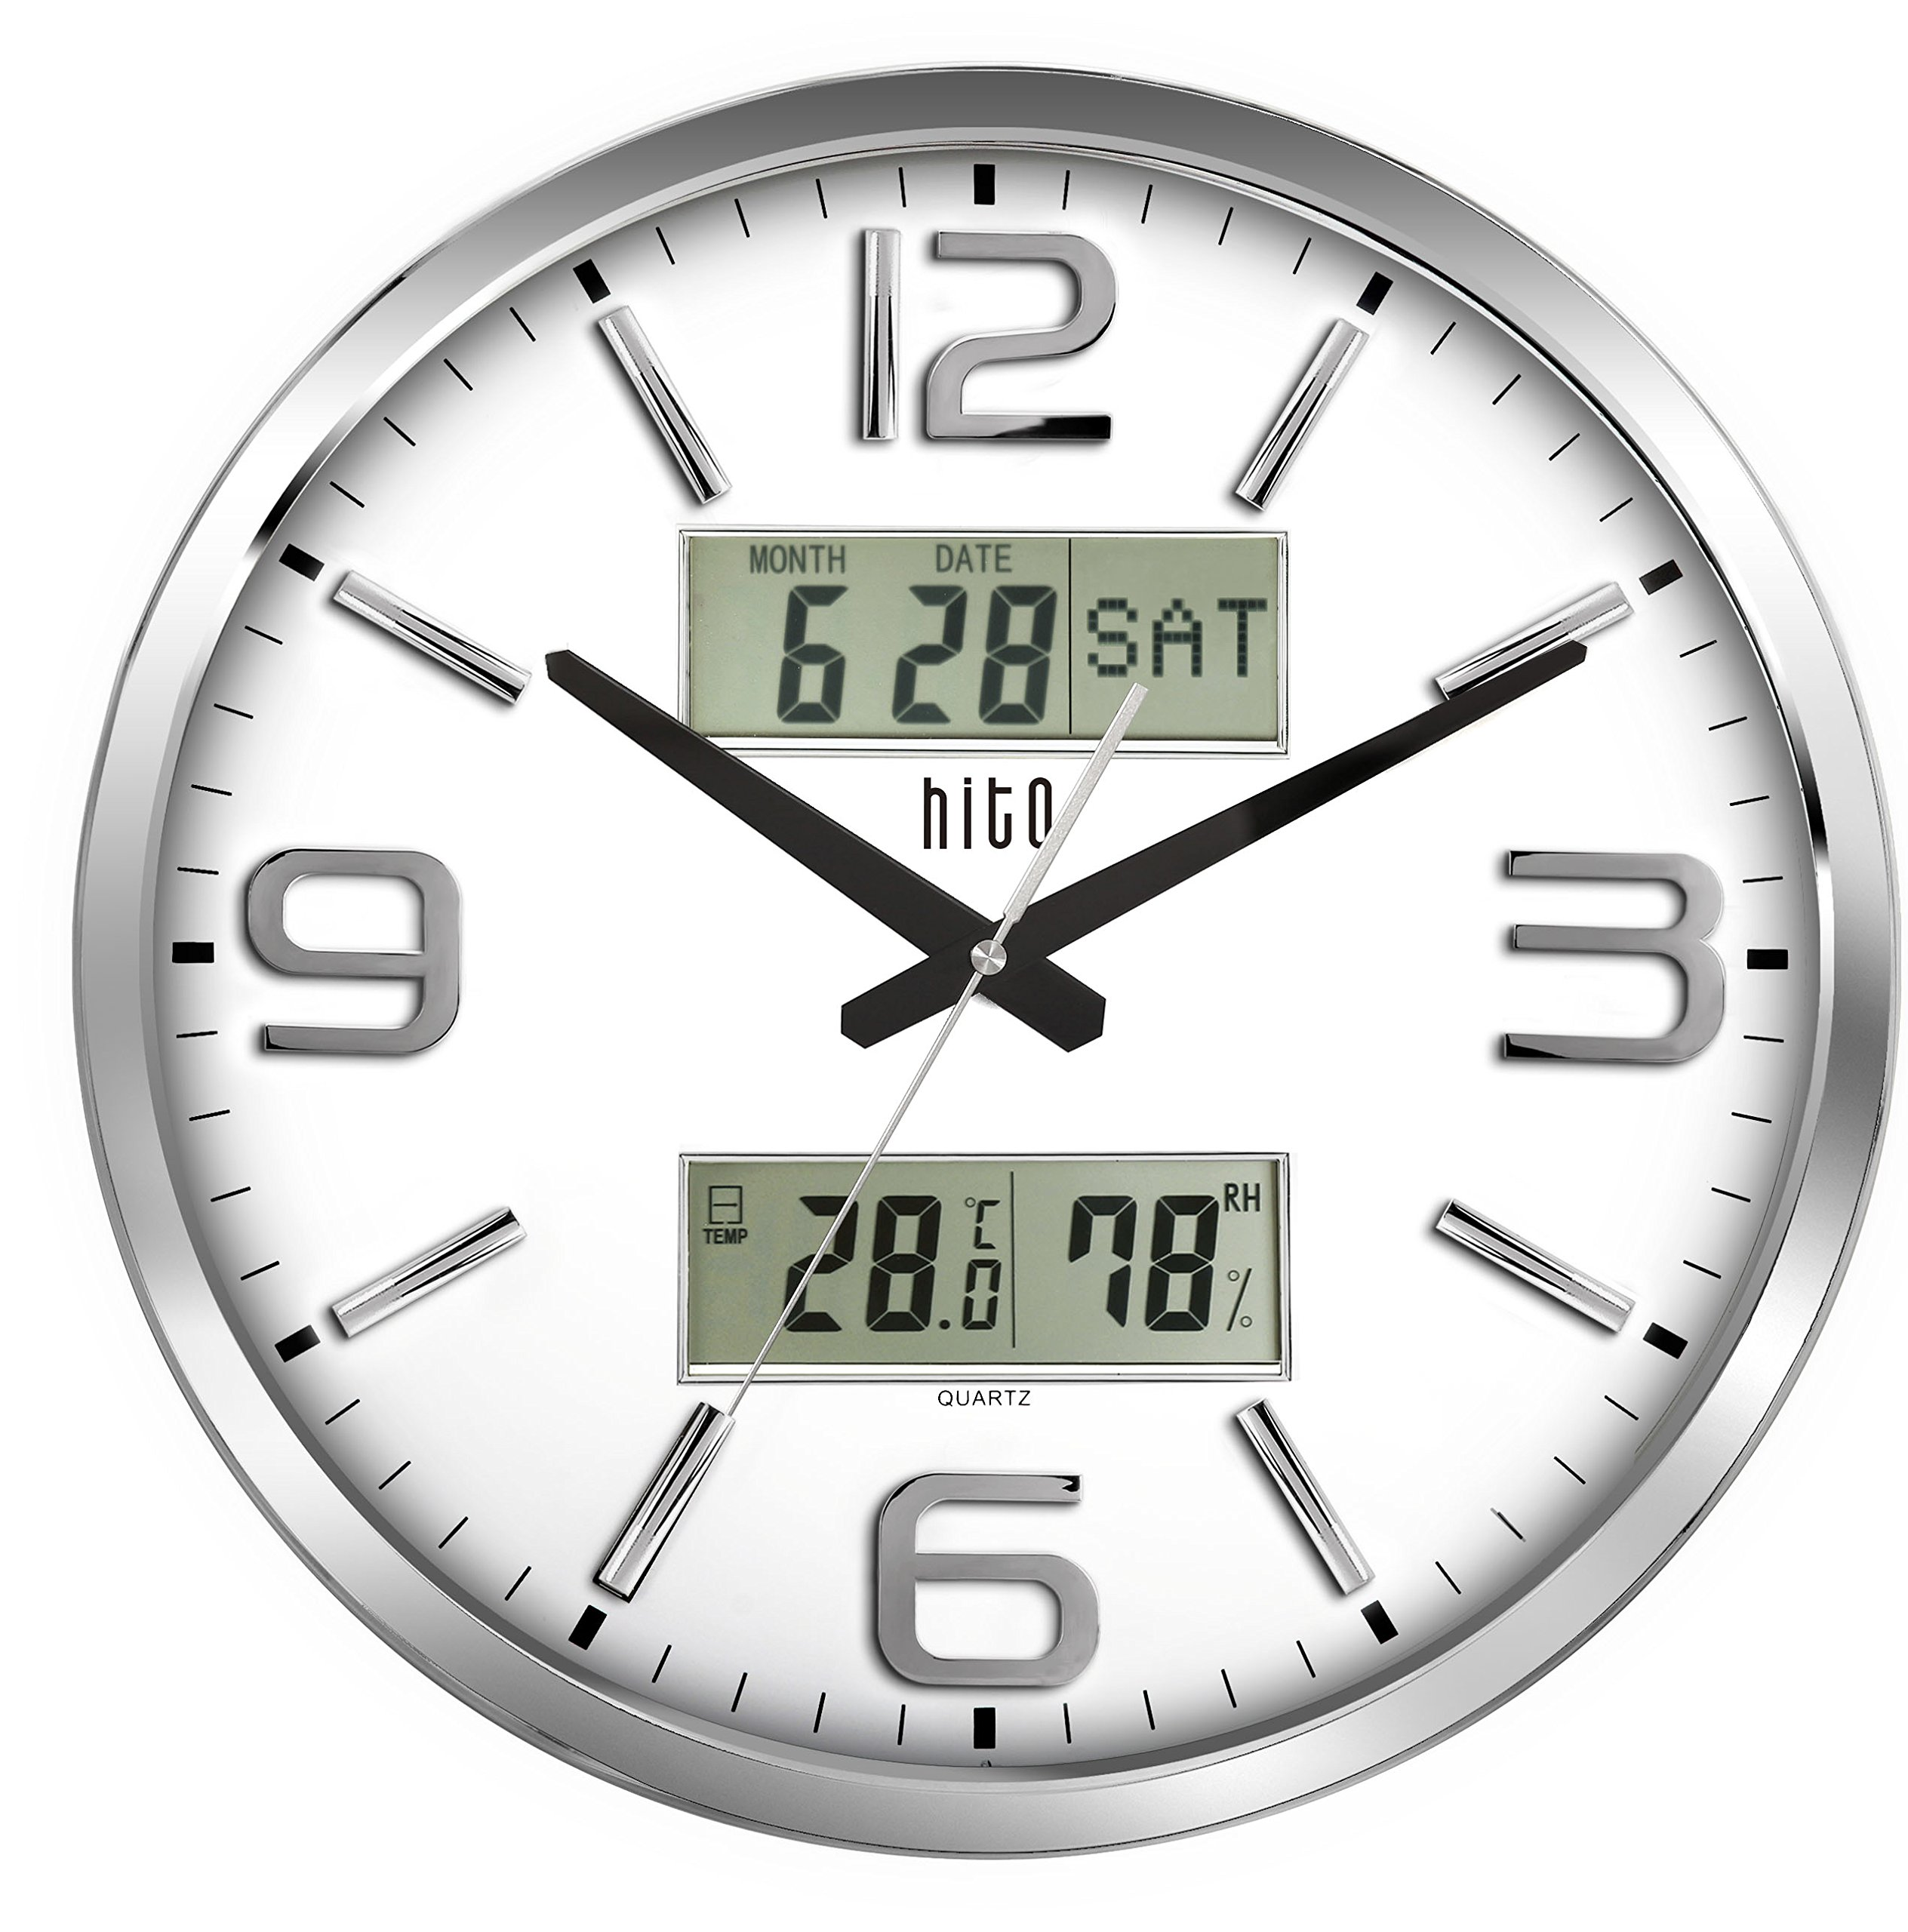 hito Silent Wall Clock Non ticking 16 inch Large Oversized Date Day Indoor Temperature Humidity, Excellent Accurate Sweep Movement Silver Frame Glass Cover (16 inches, Chrome+ LCDs)